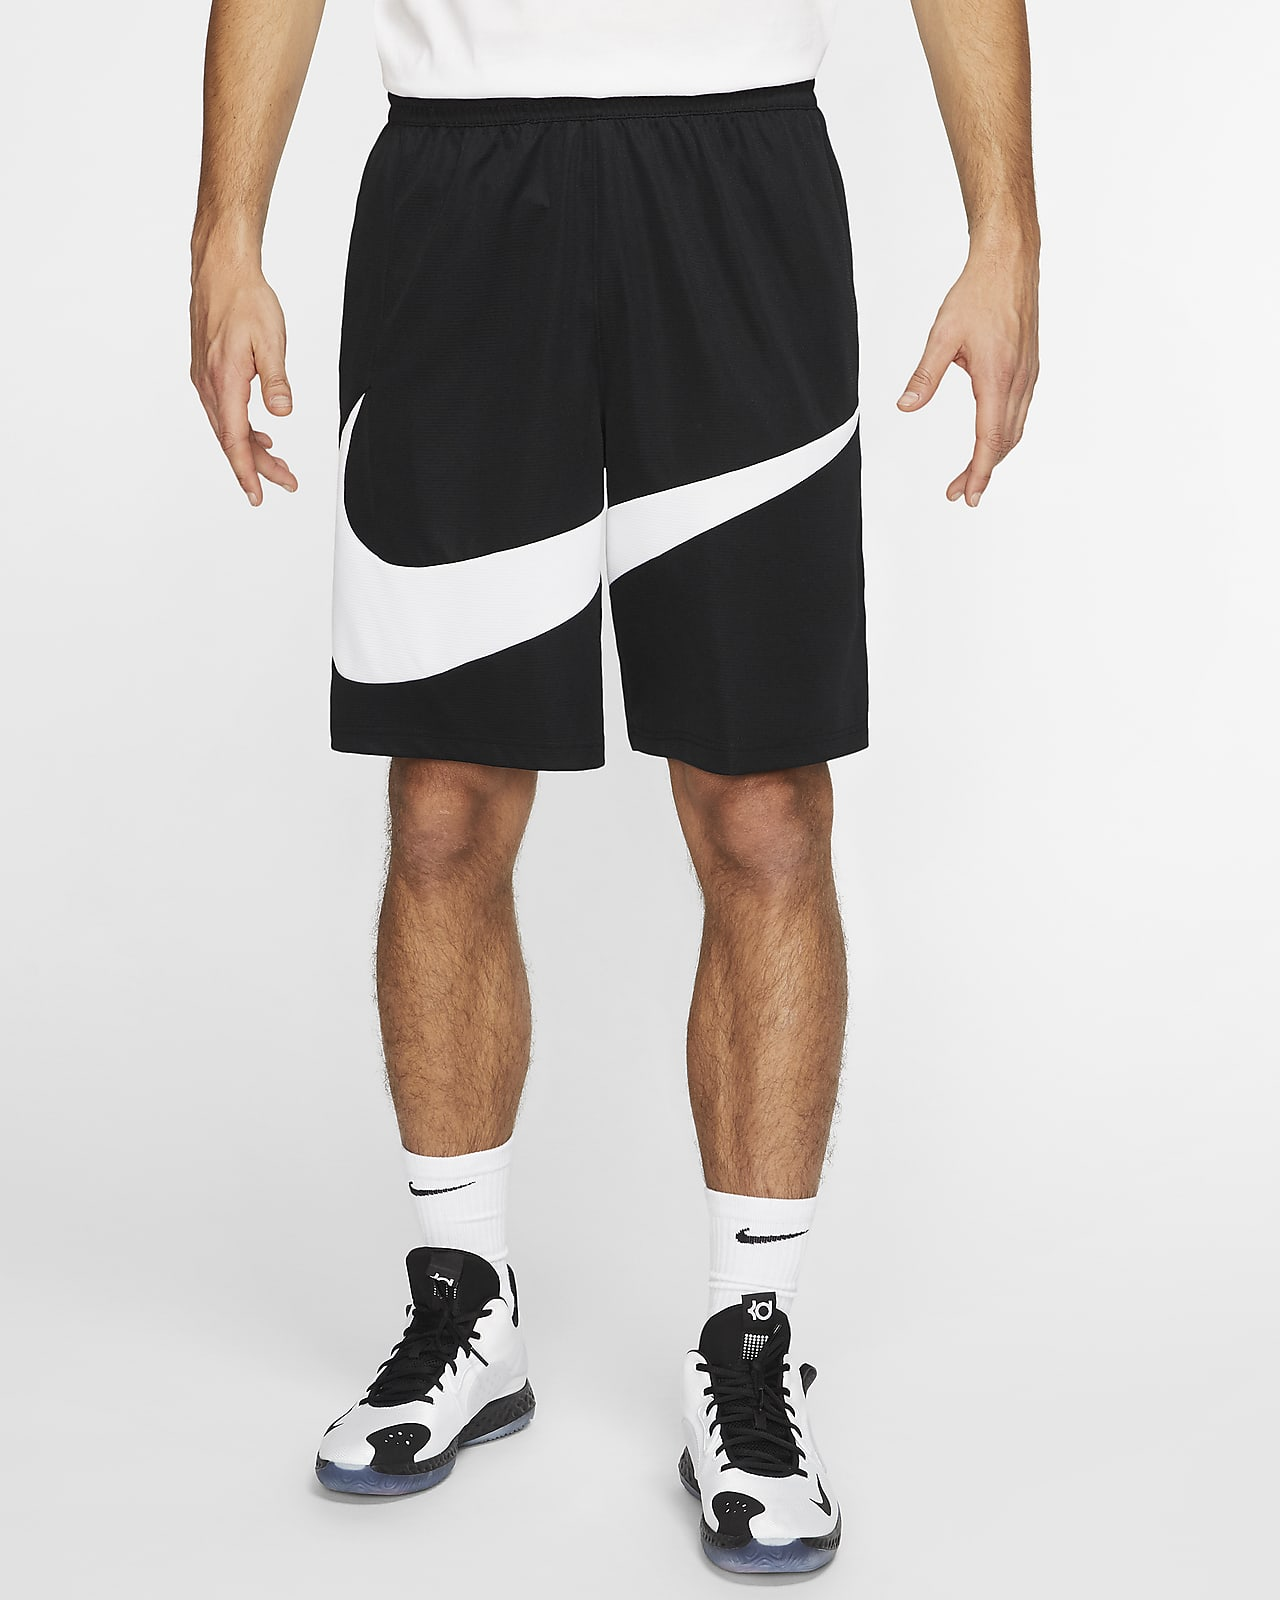 Nike Dri-FIT Basketball Shorts